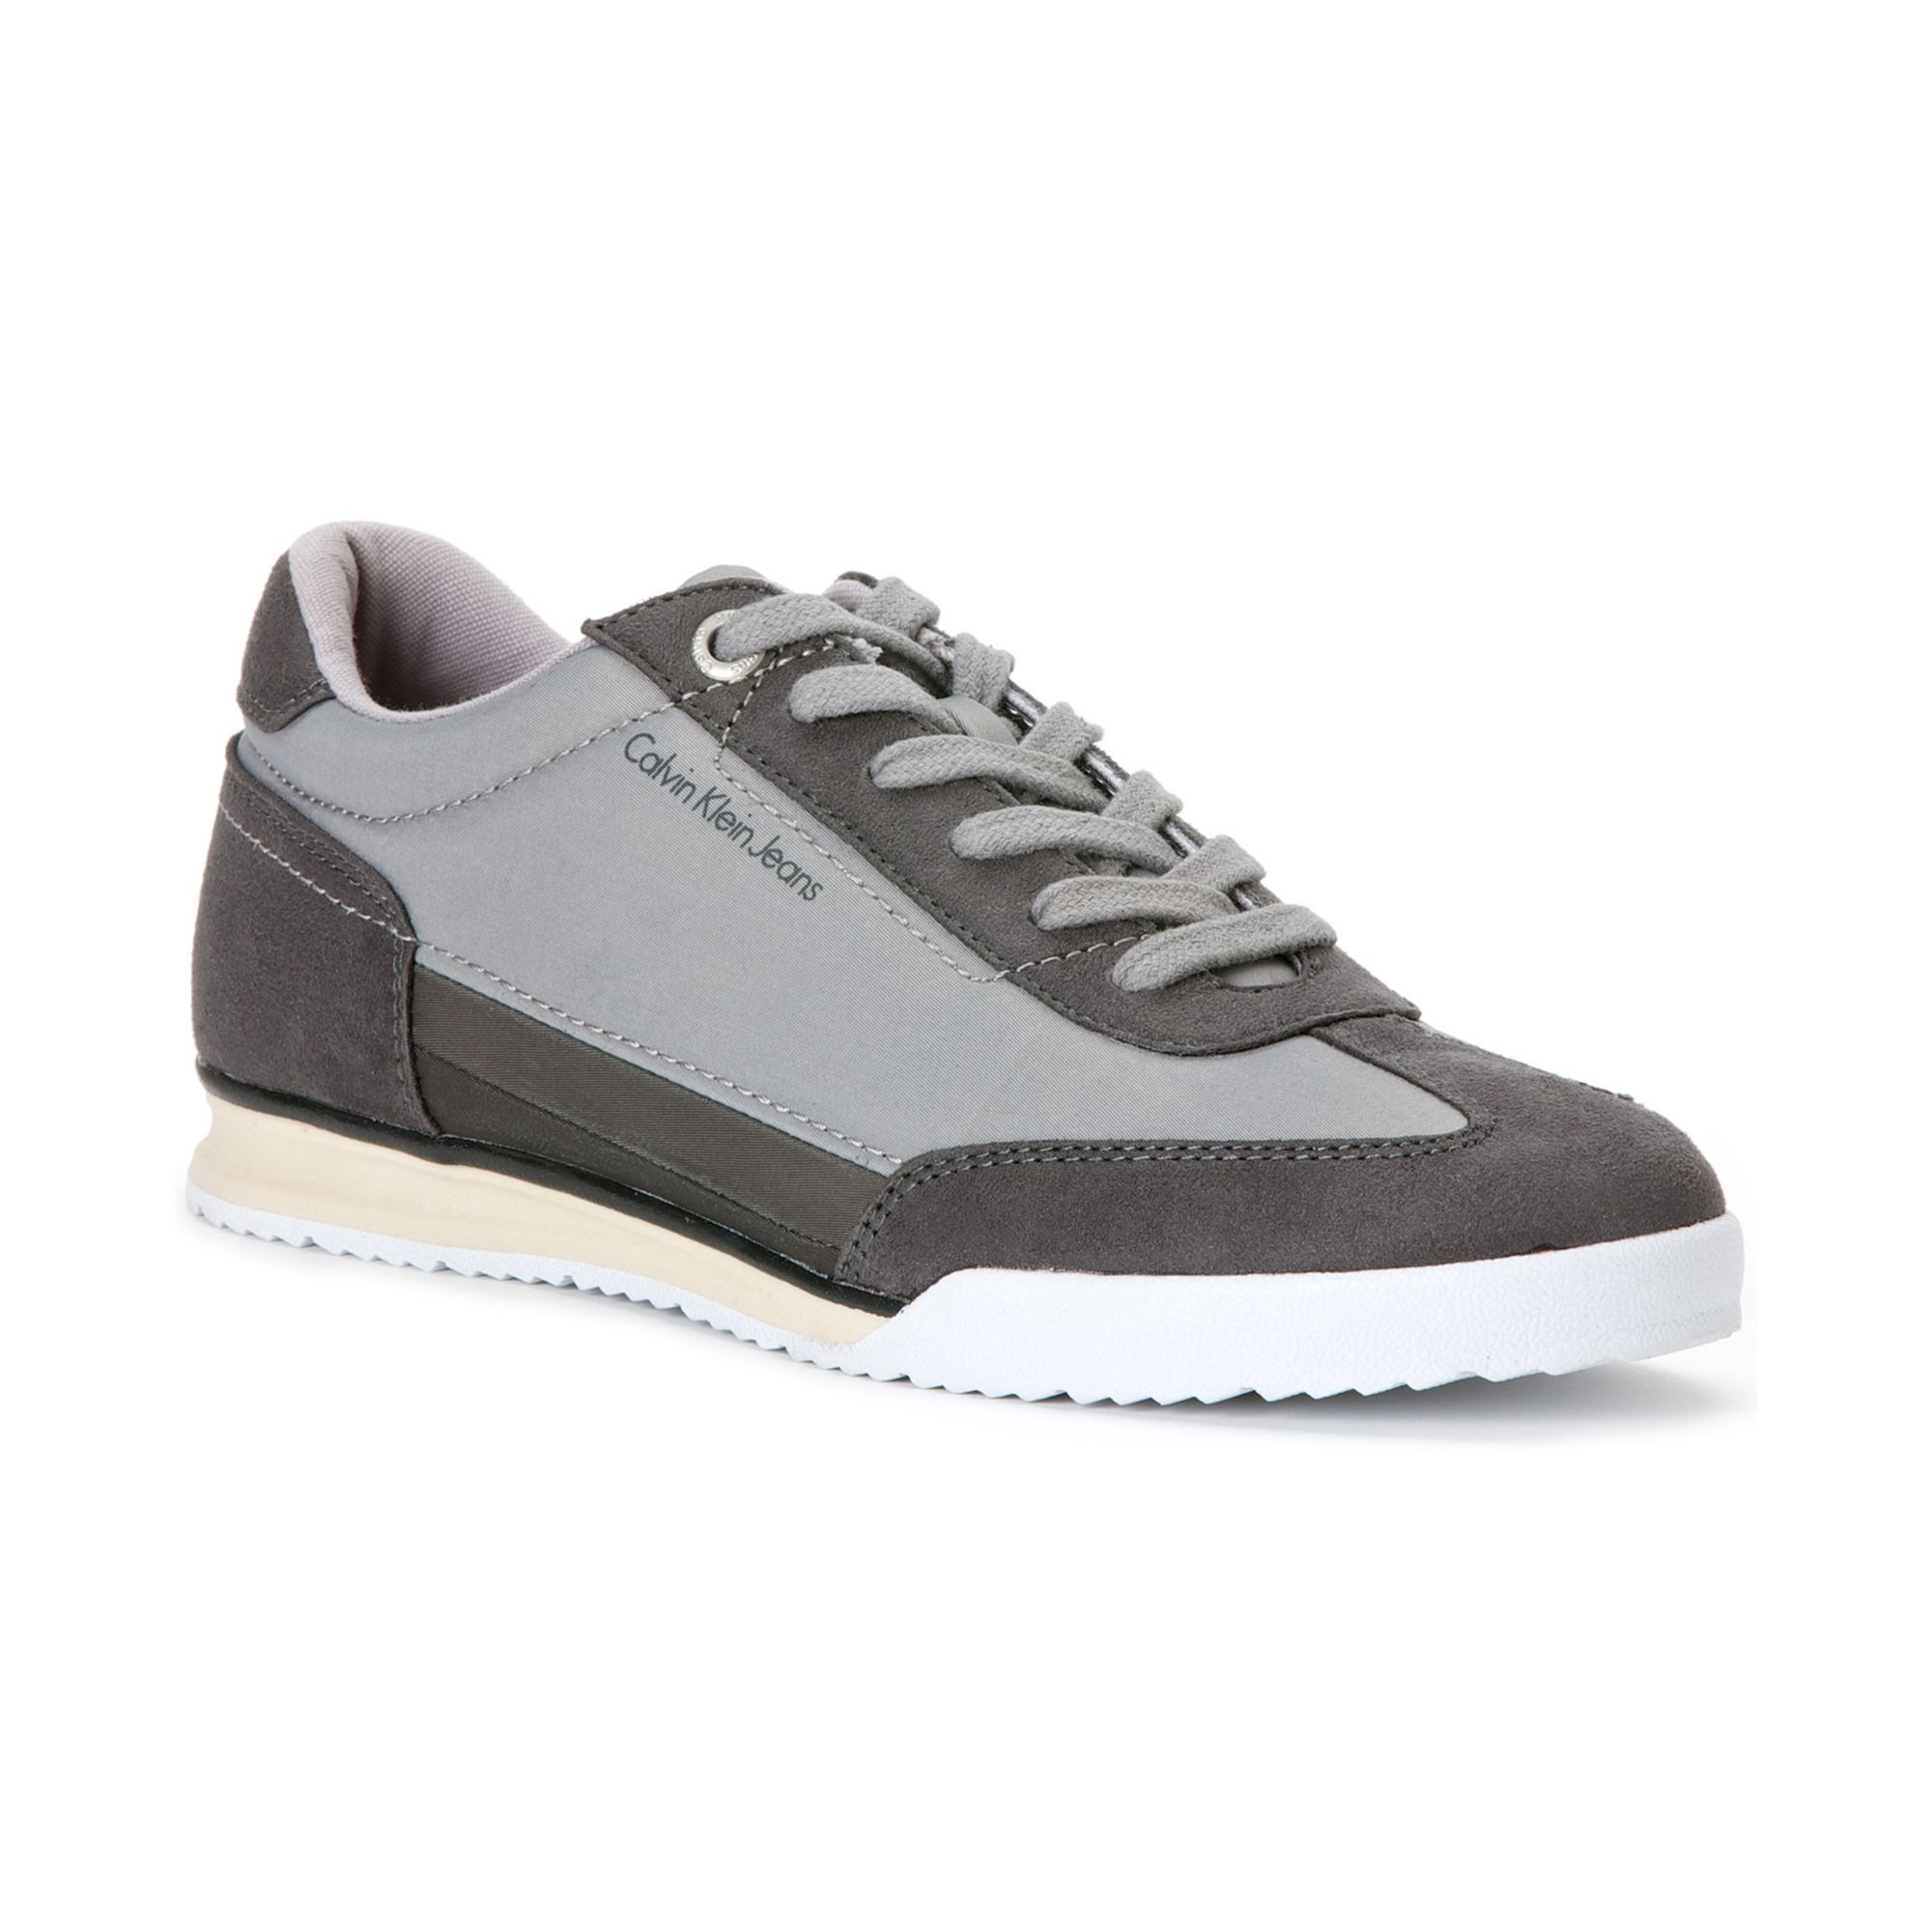 lyst calvin klein ruben sneakers in gray for men. Black Bedroom Furniture Sets. Home Design Ideas